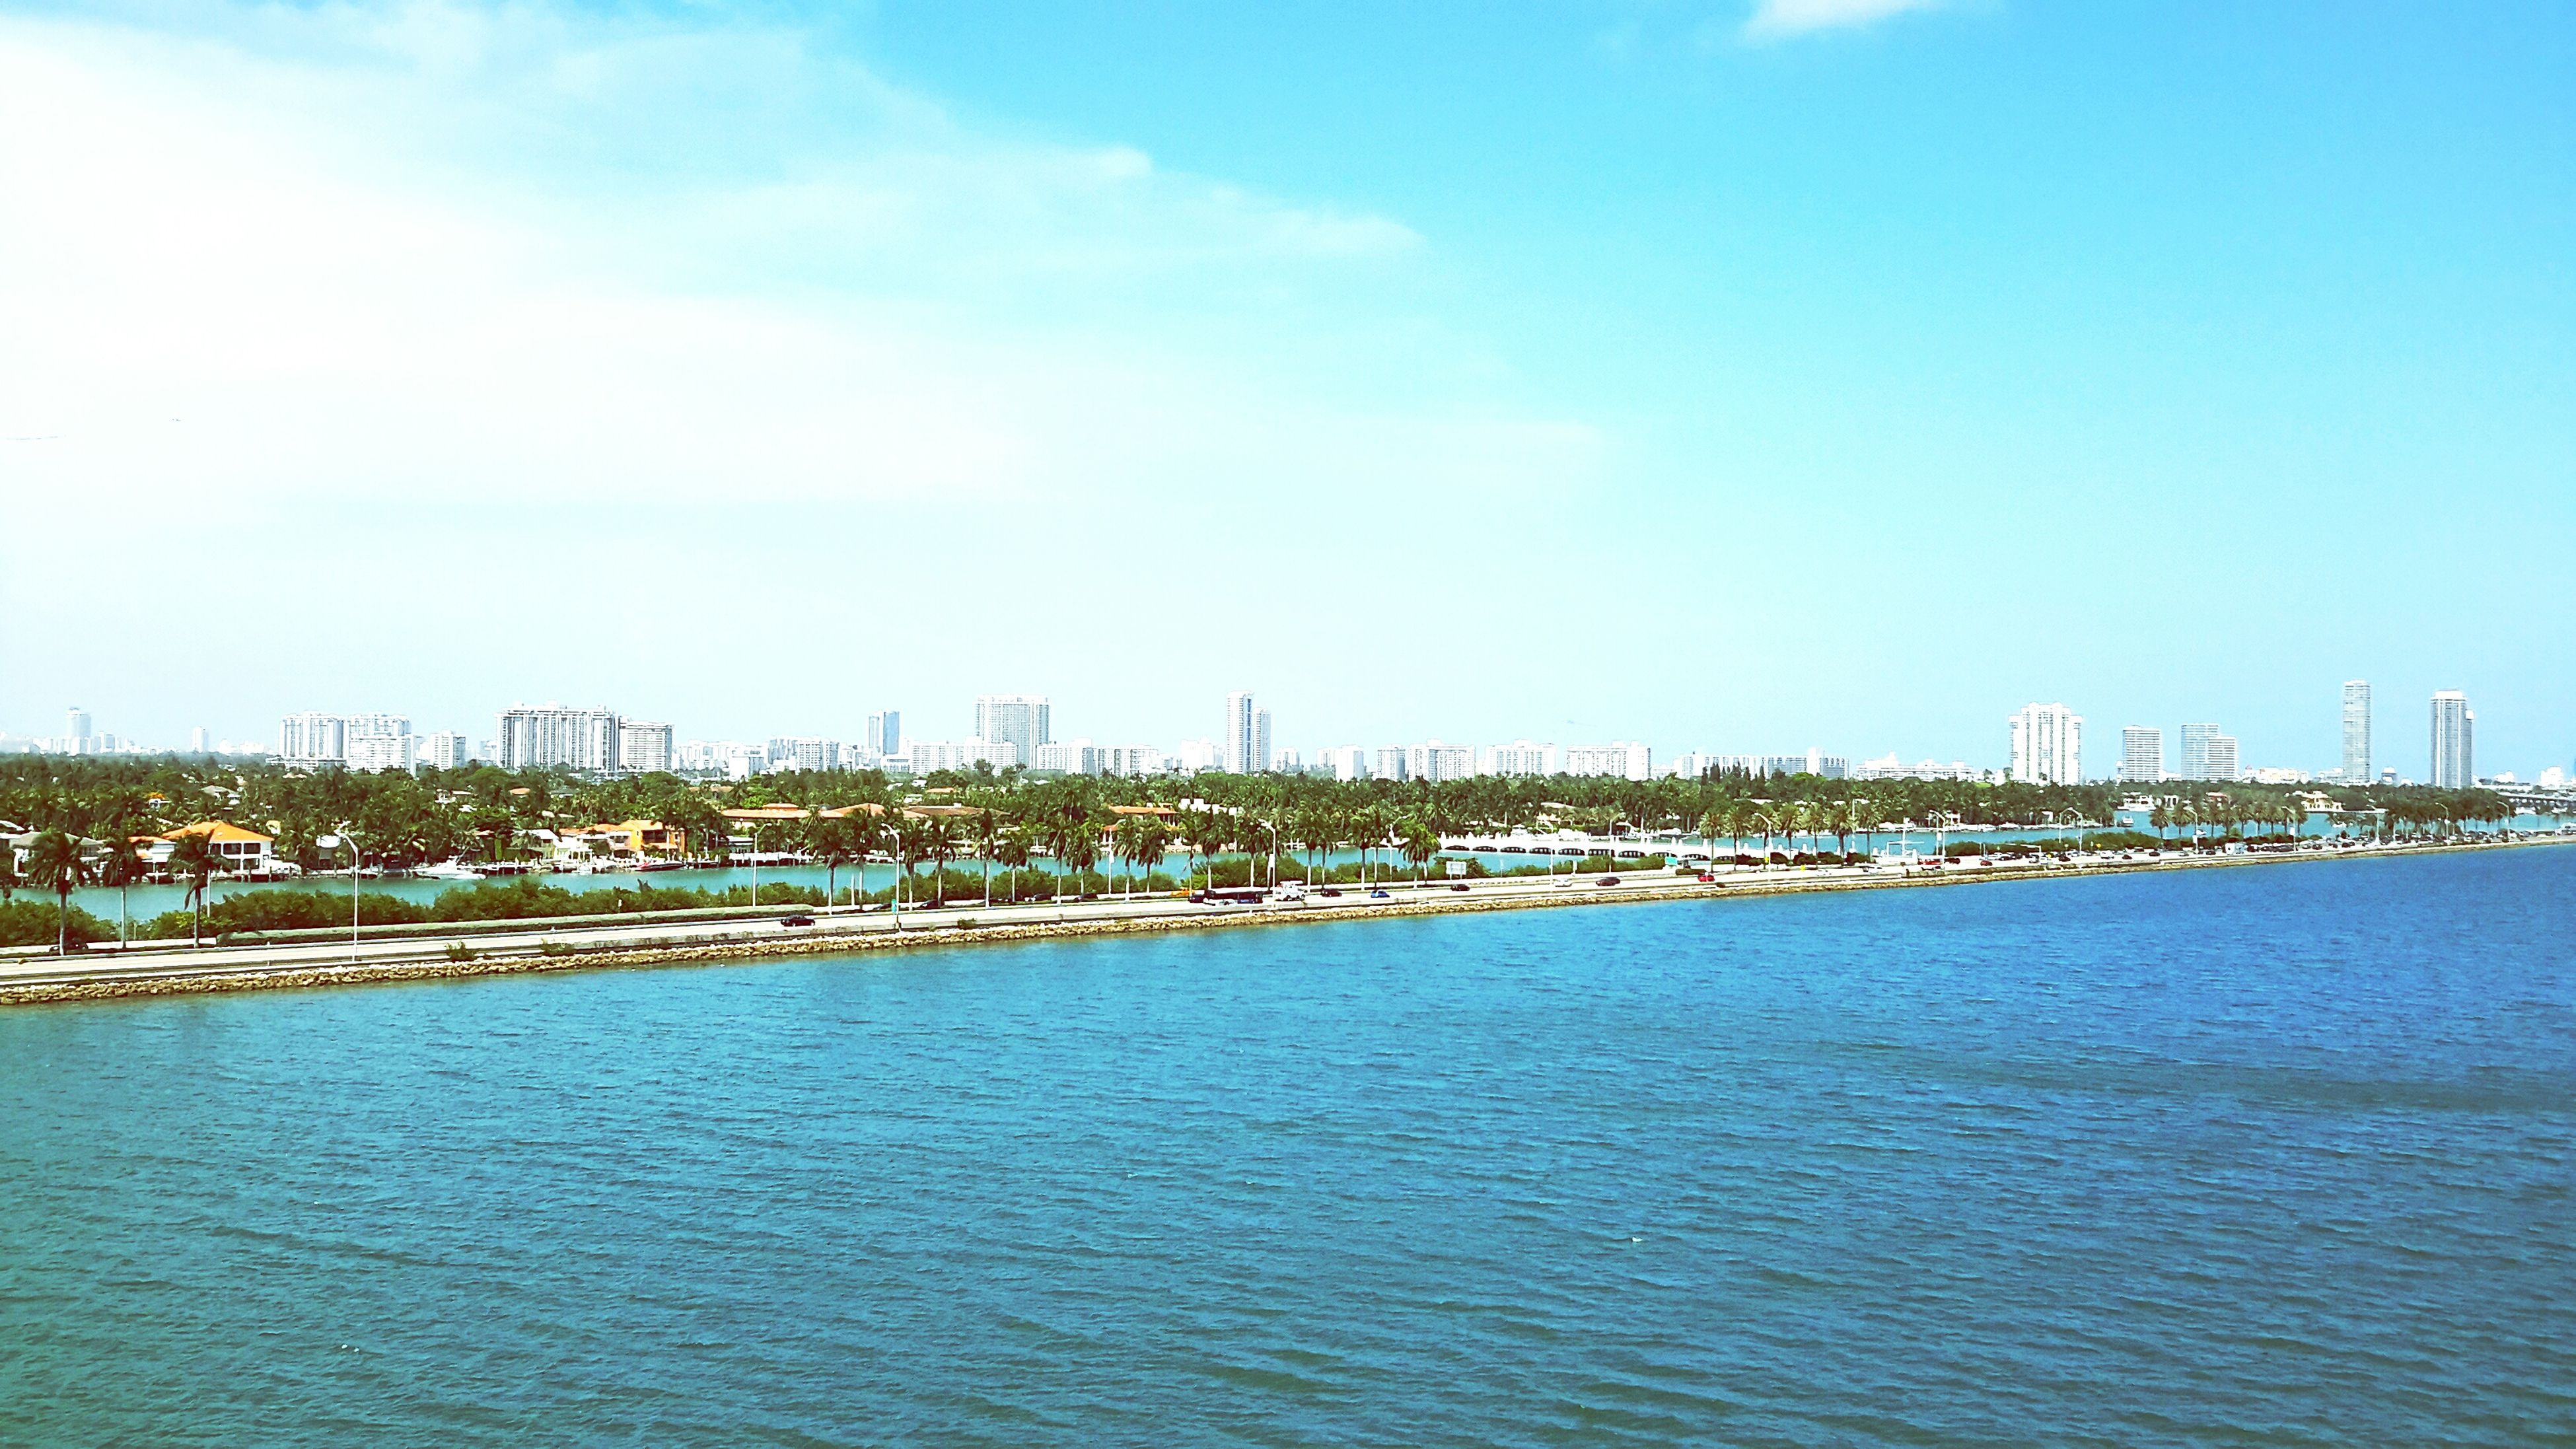 Another shot of my view. Nice to see calm skies and flowing water! Miami, FL Carnival Breeze Carnival Cruise Vacation Summer 2015 Life Journey Enjoy what you have!